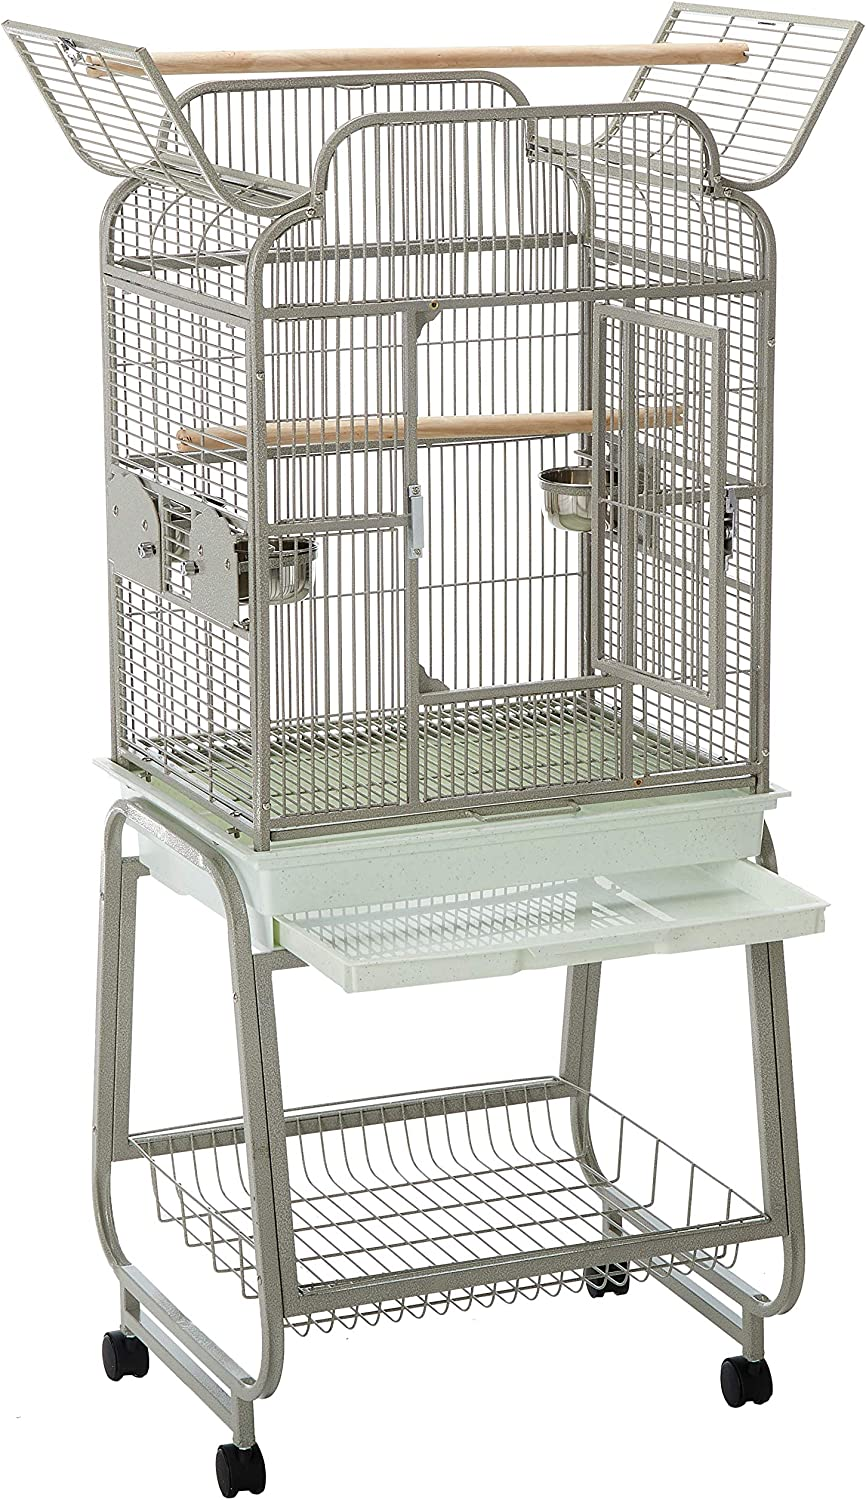 A/&E Cage 782217 Platinum Open Victorian Top with Plastic Base Bird Cage 22 x 17